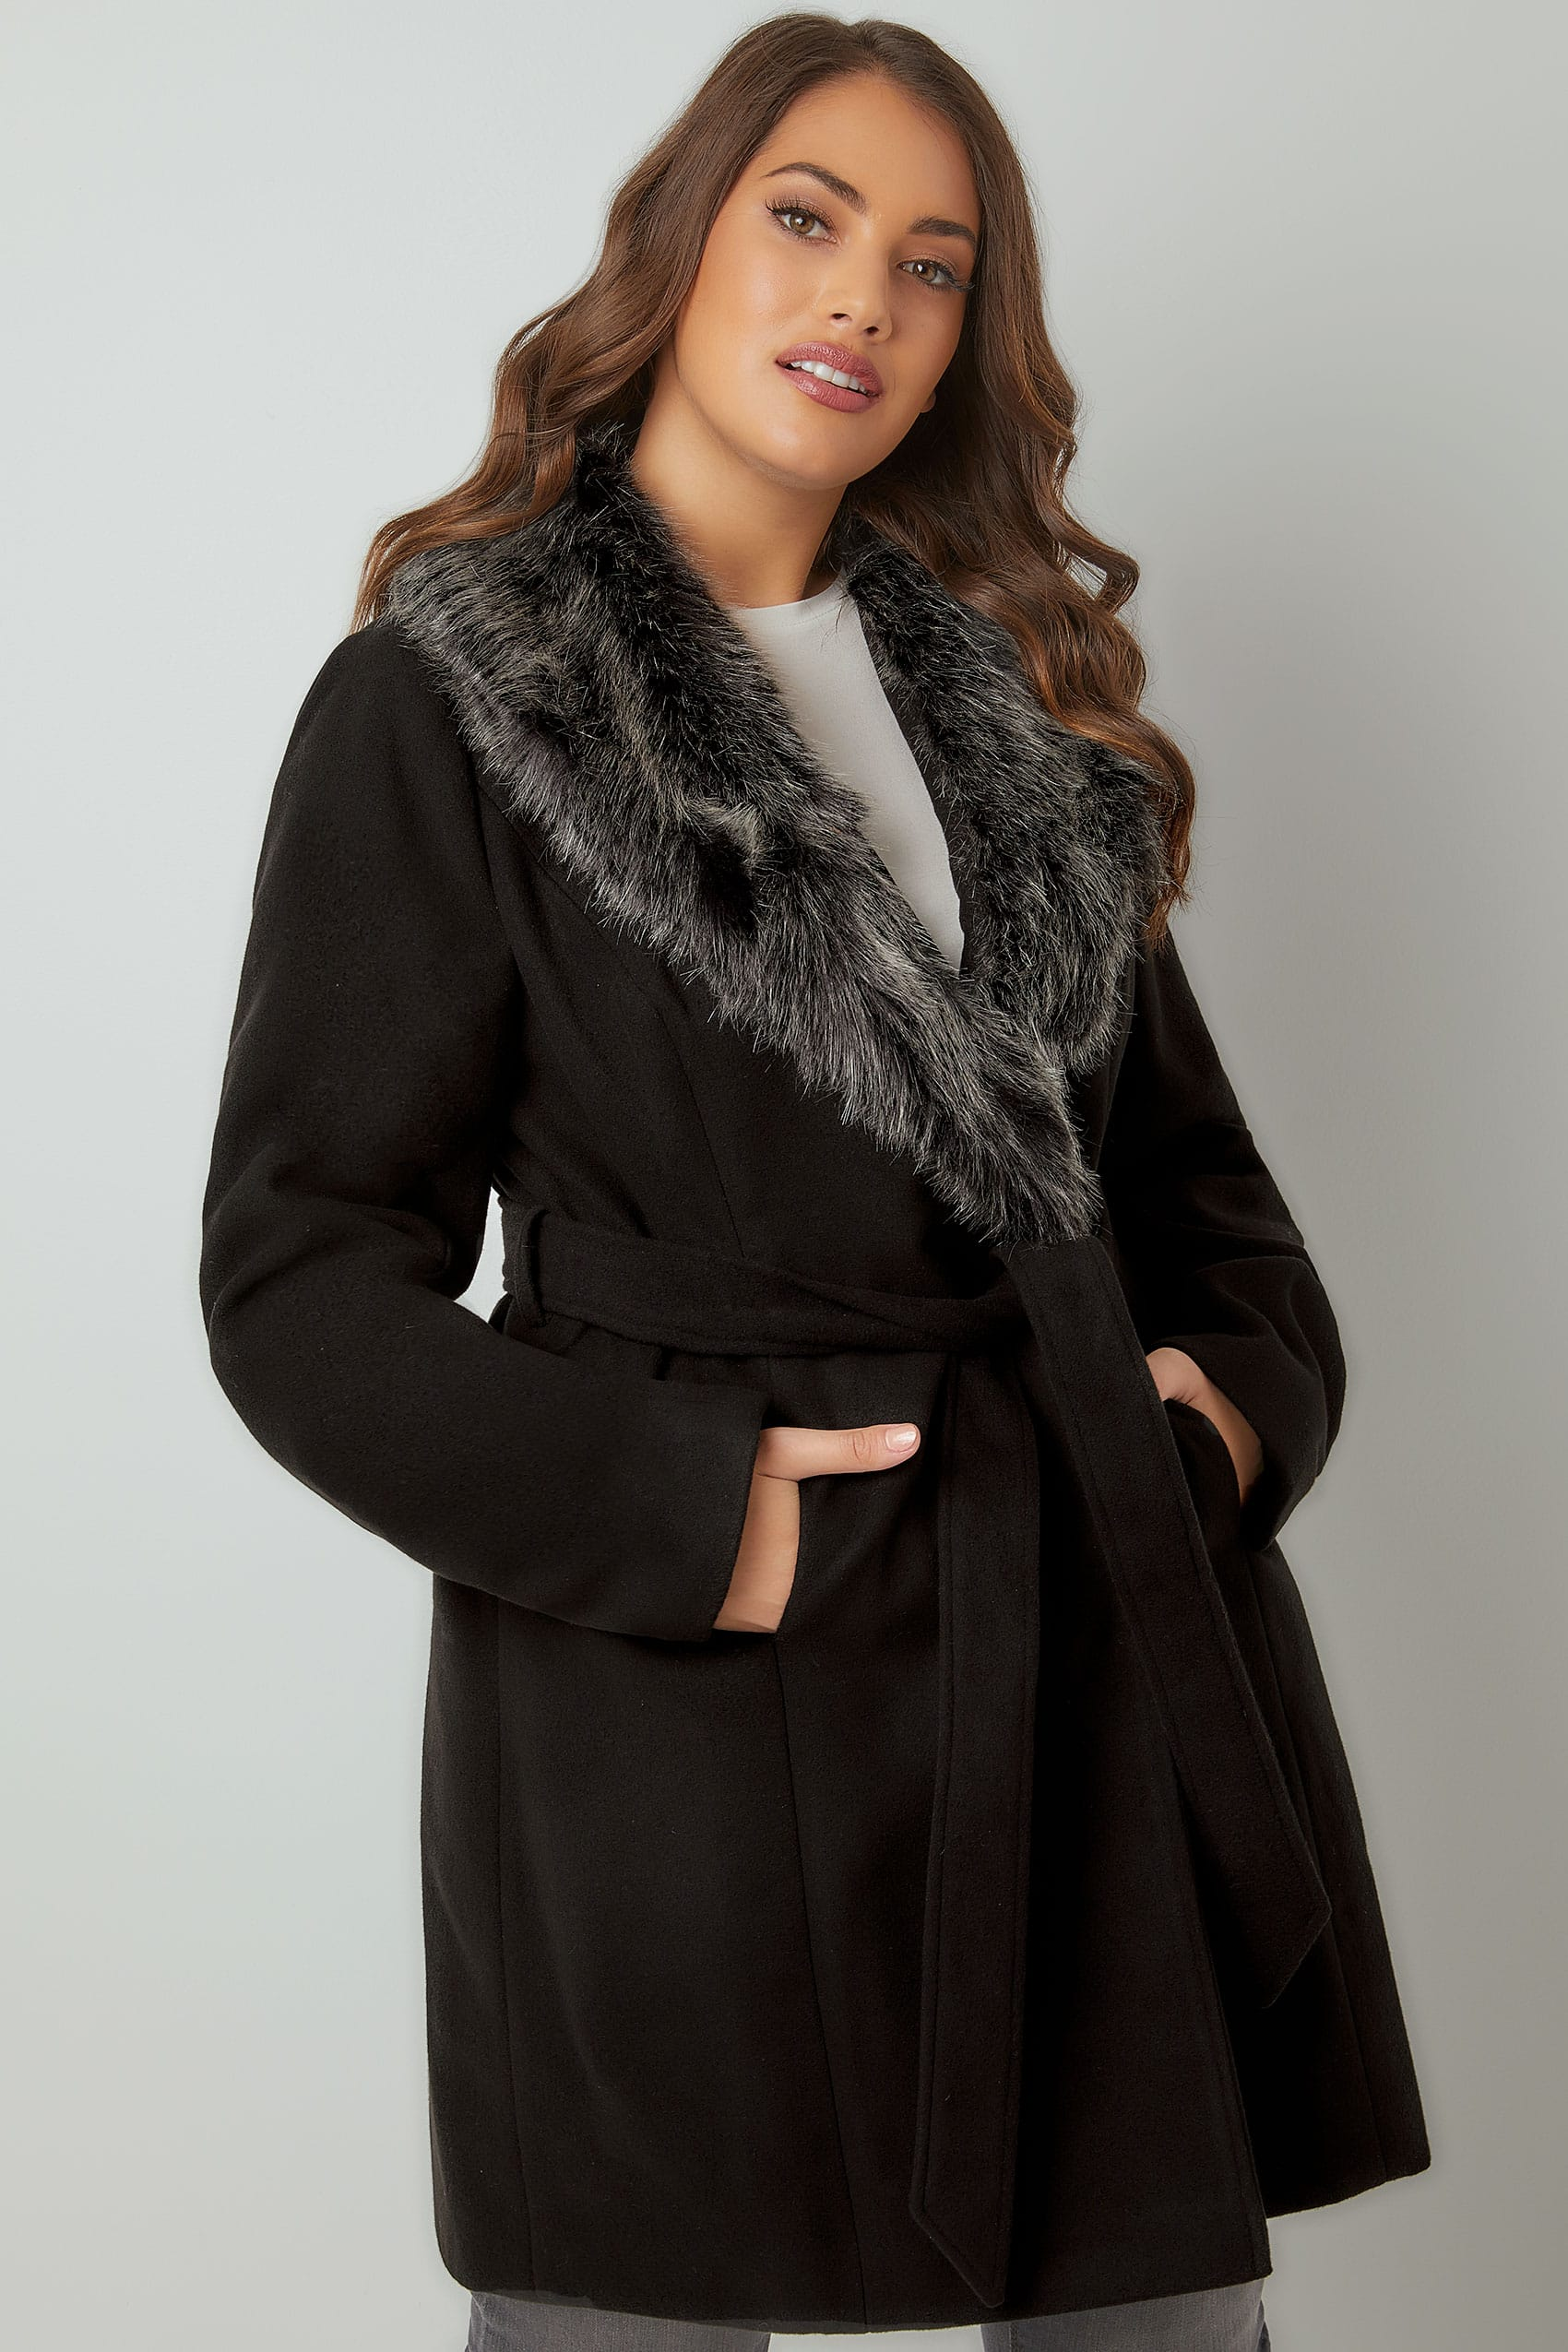 Black Coat With Faux Fur Collar & Tie Waist, Plus size 16 to 36